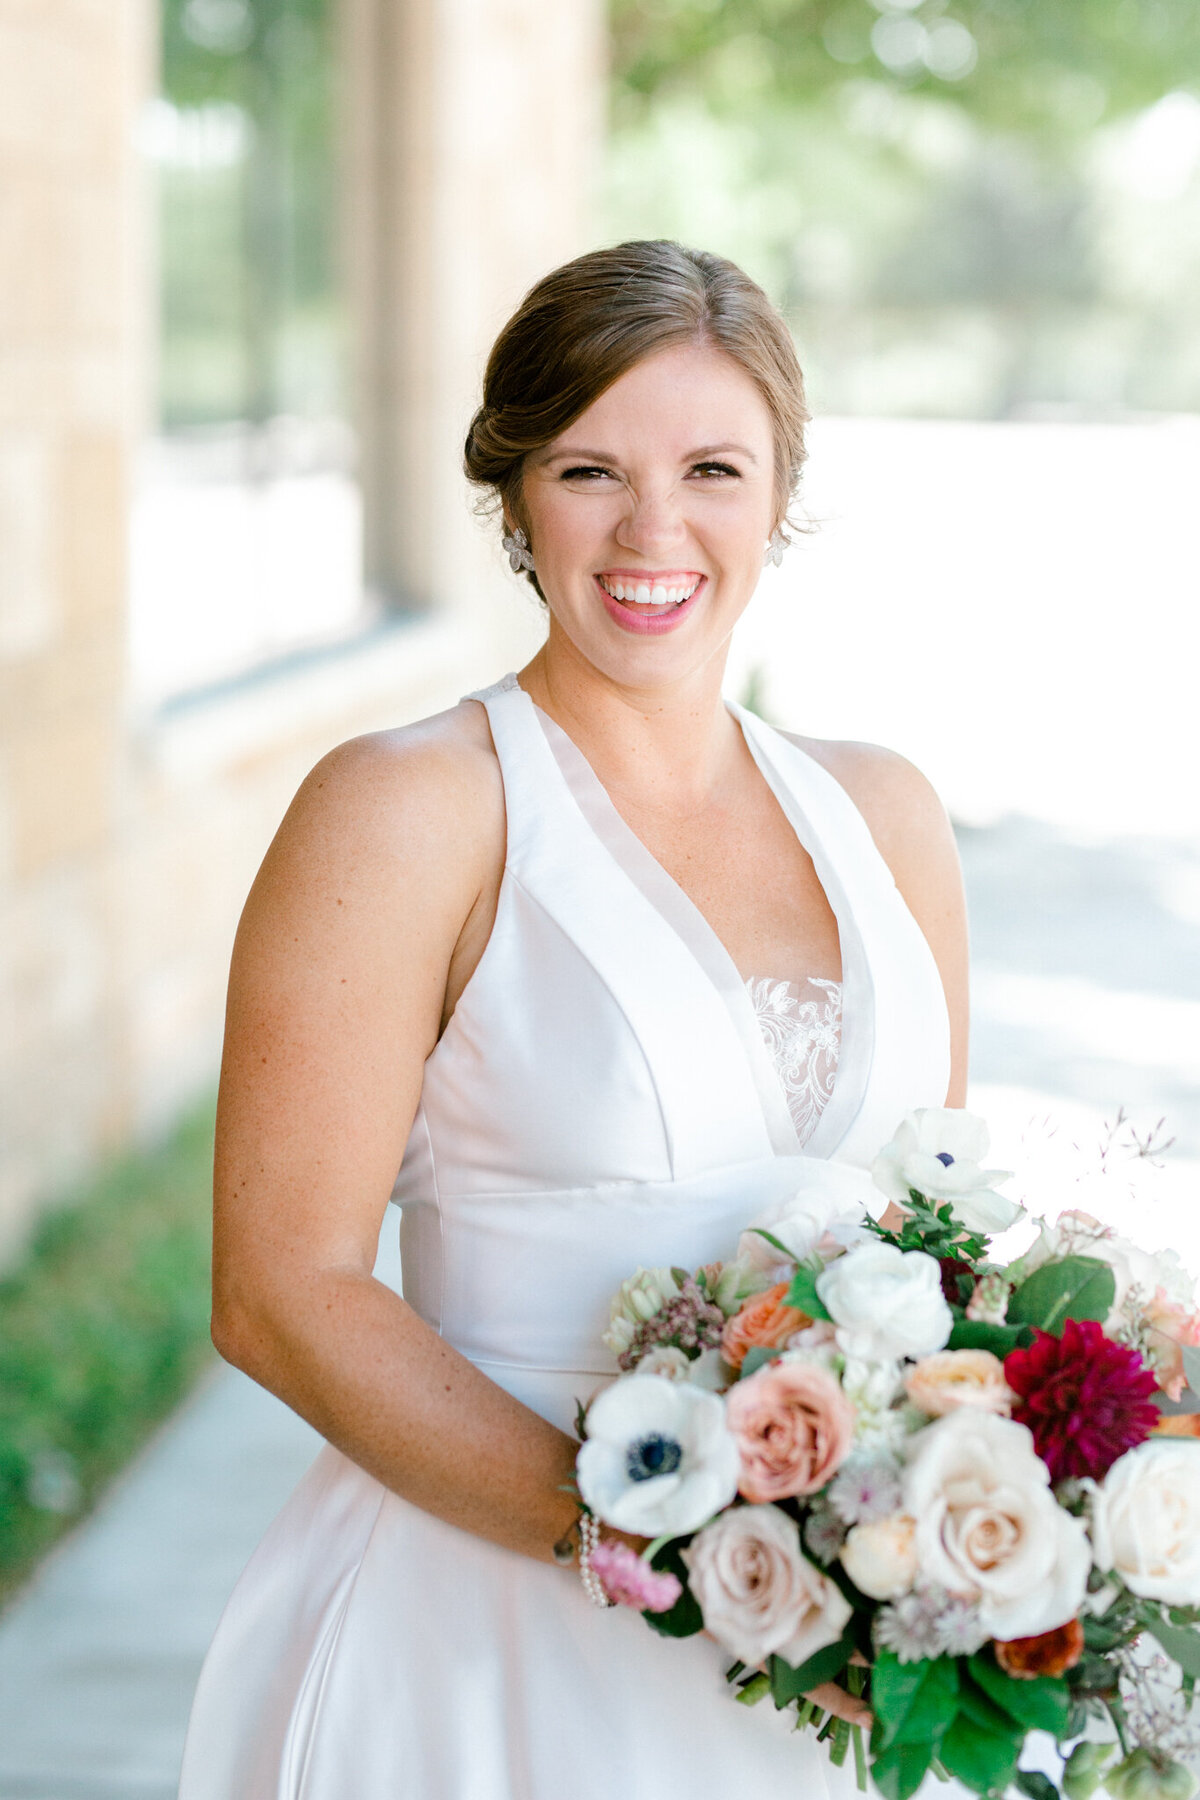 Kaylee & Michael's Wedding at Watermark Community Church | Dallas Wedding Photographer | Sami Kathryn Photography-56